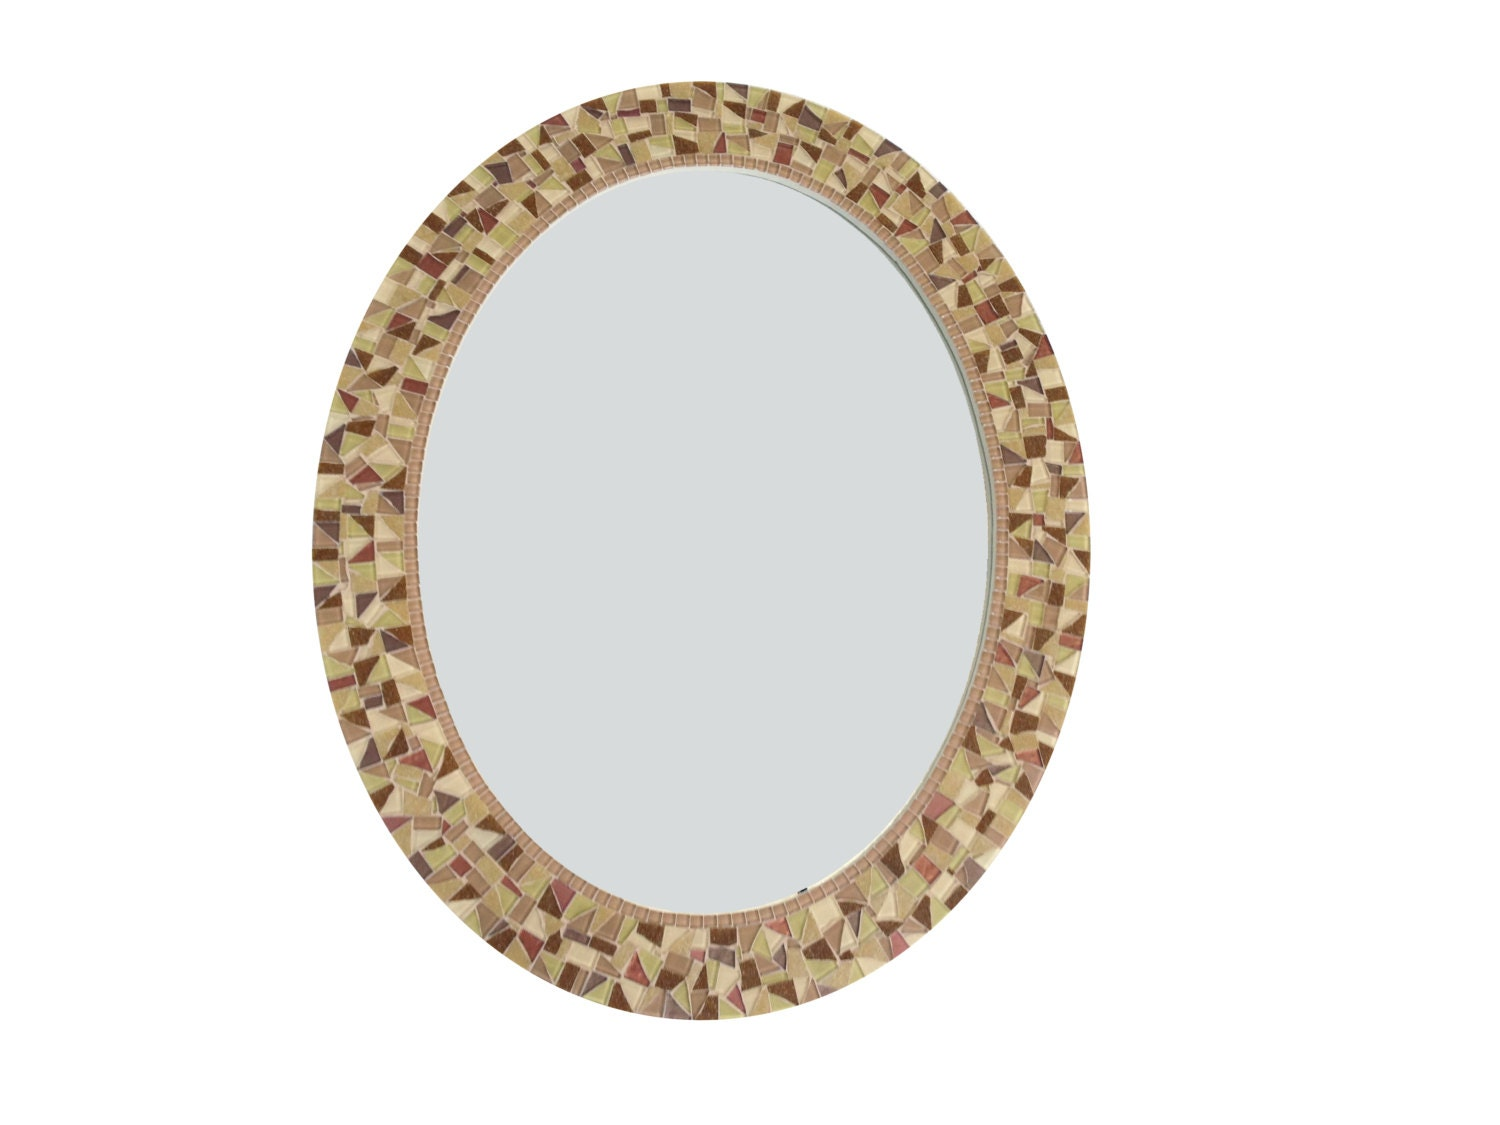 Brown wall mirror oval mosaic mirror decorative mirror for Decorative mirrors